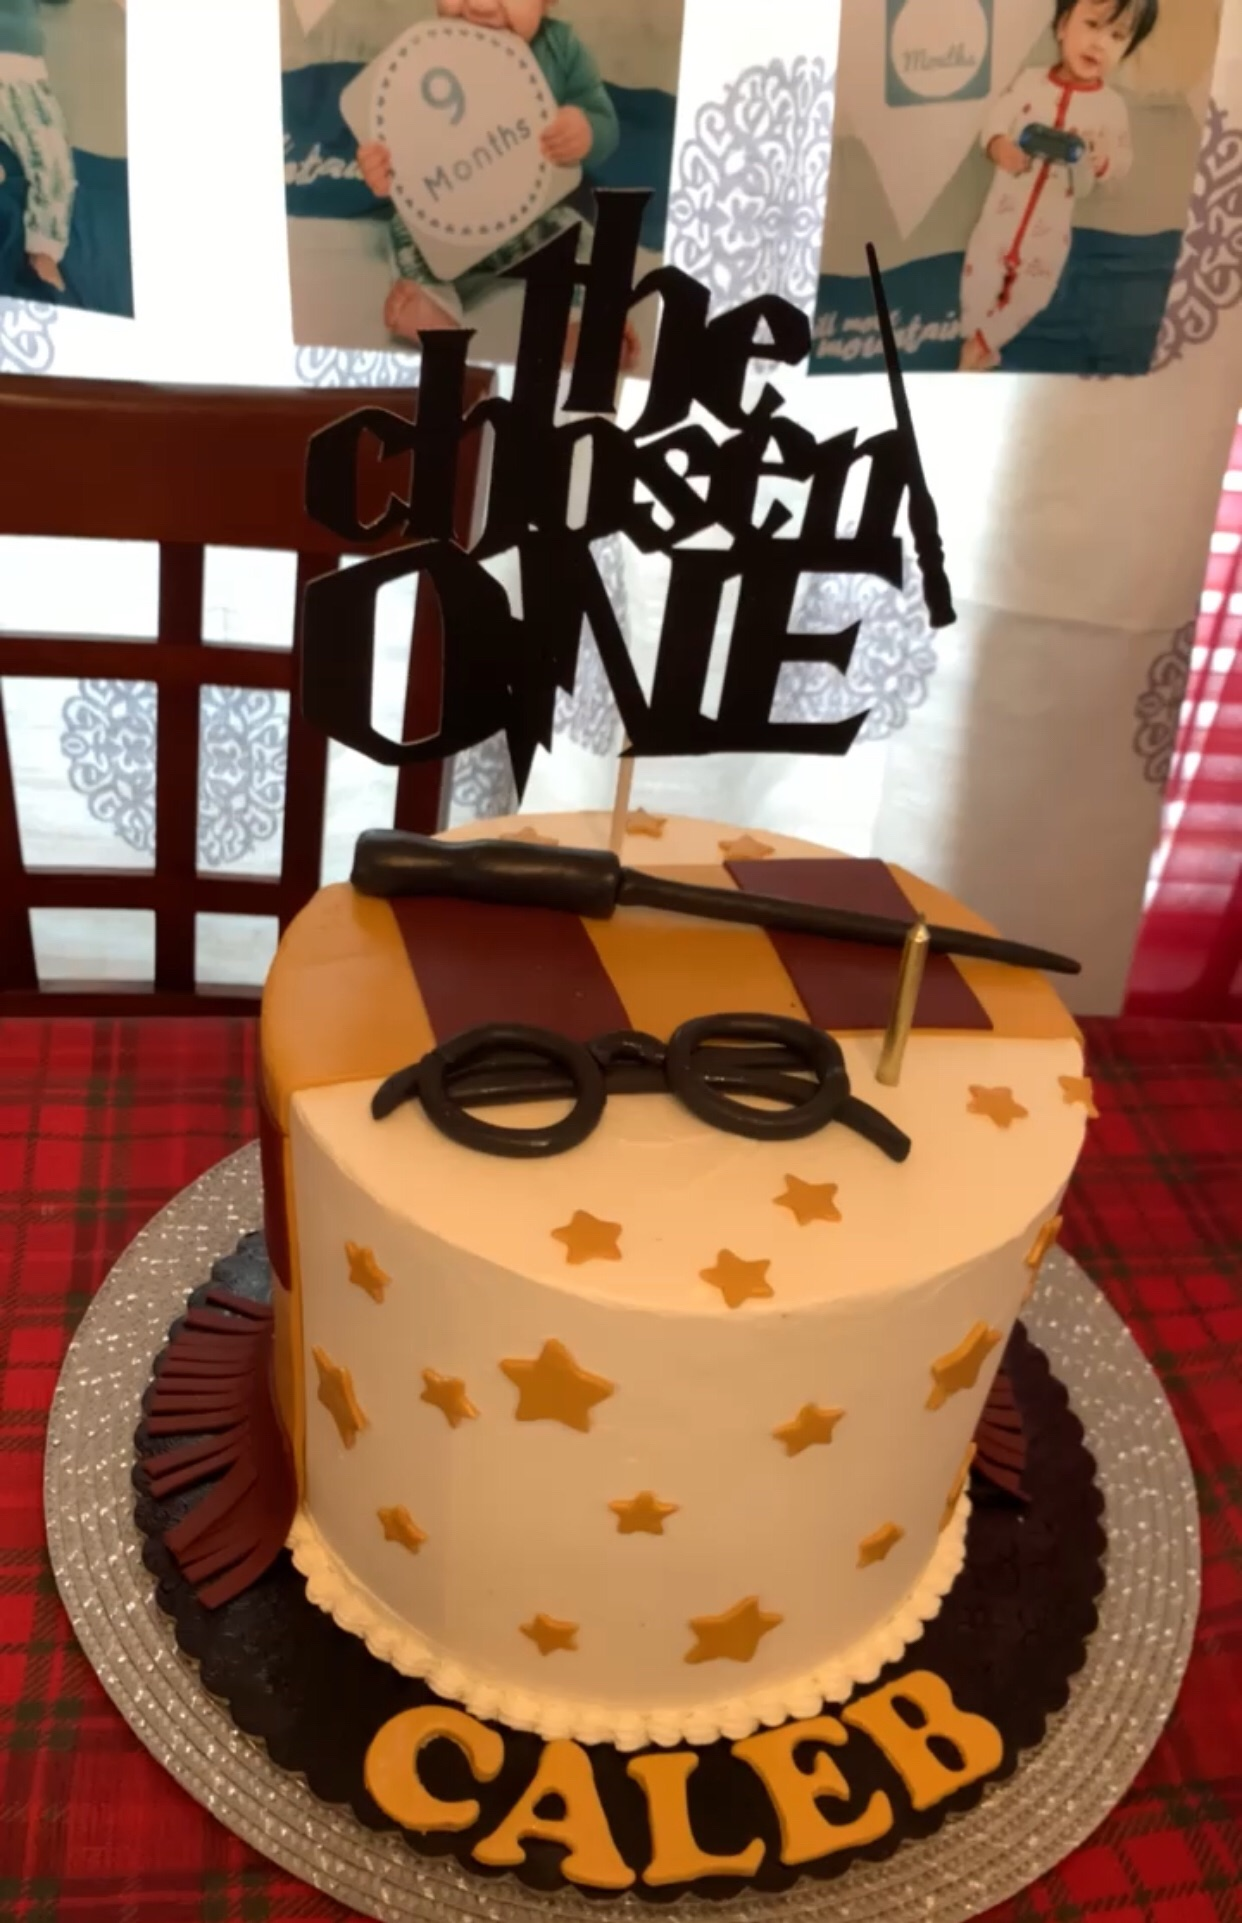 The Chosen One - Harry Potter themed birthday cake.